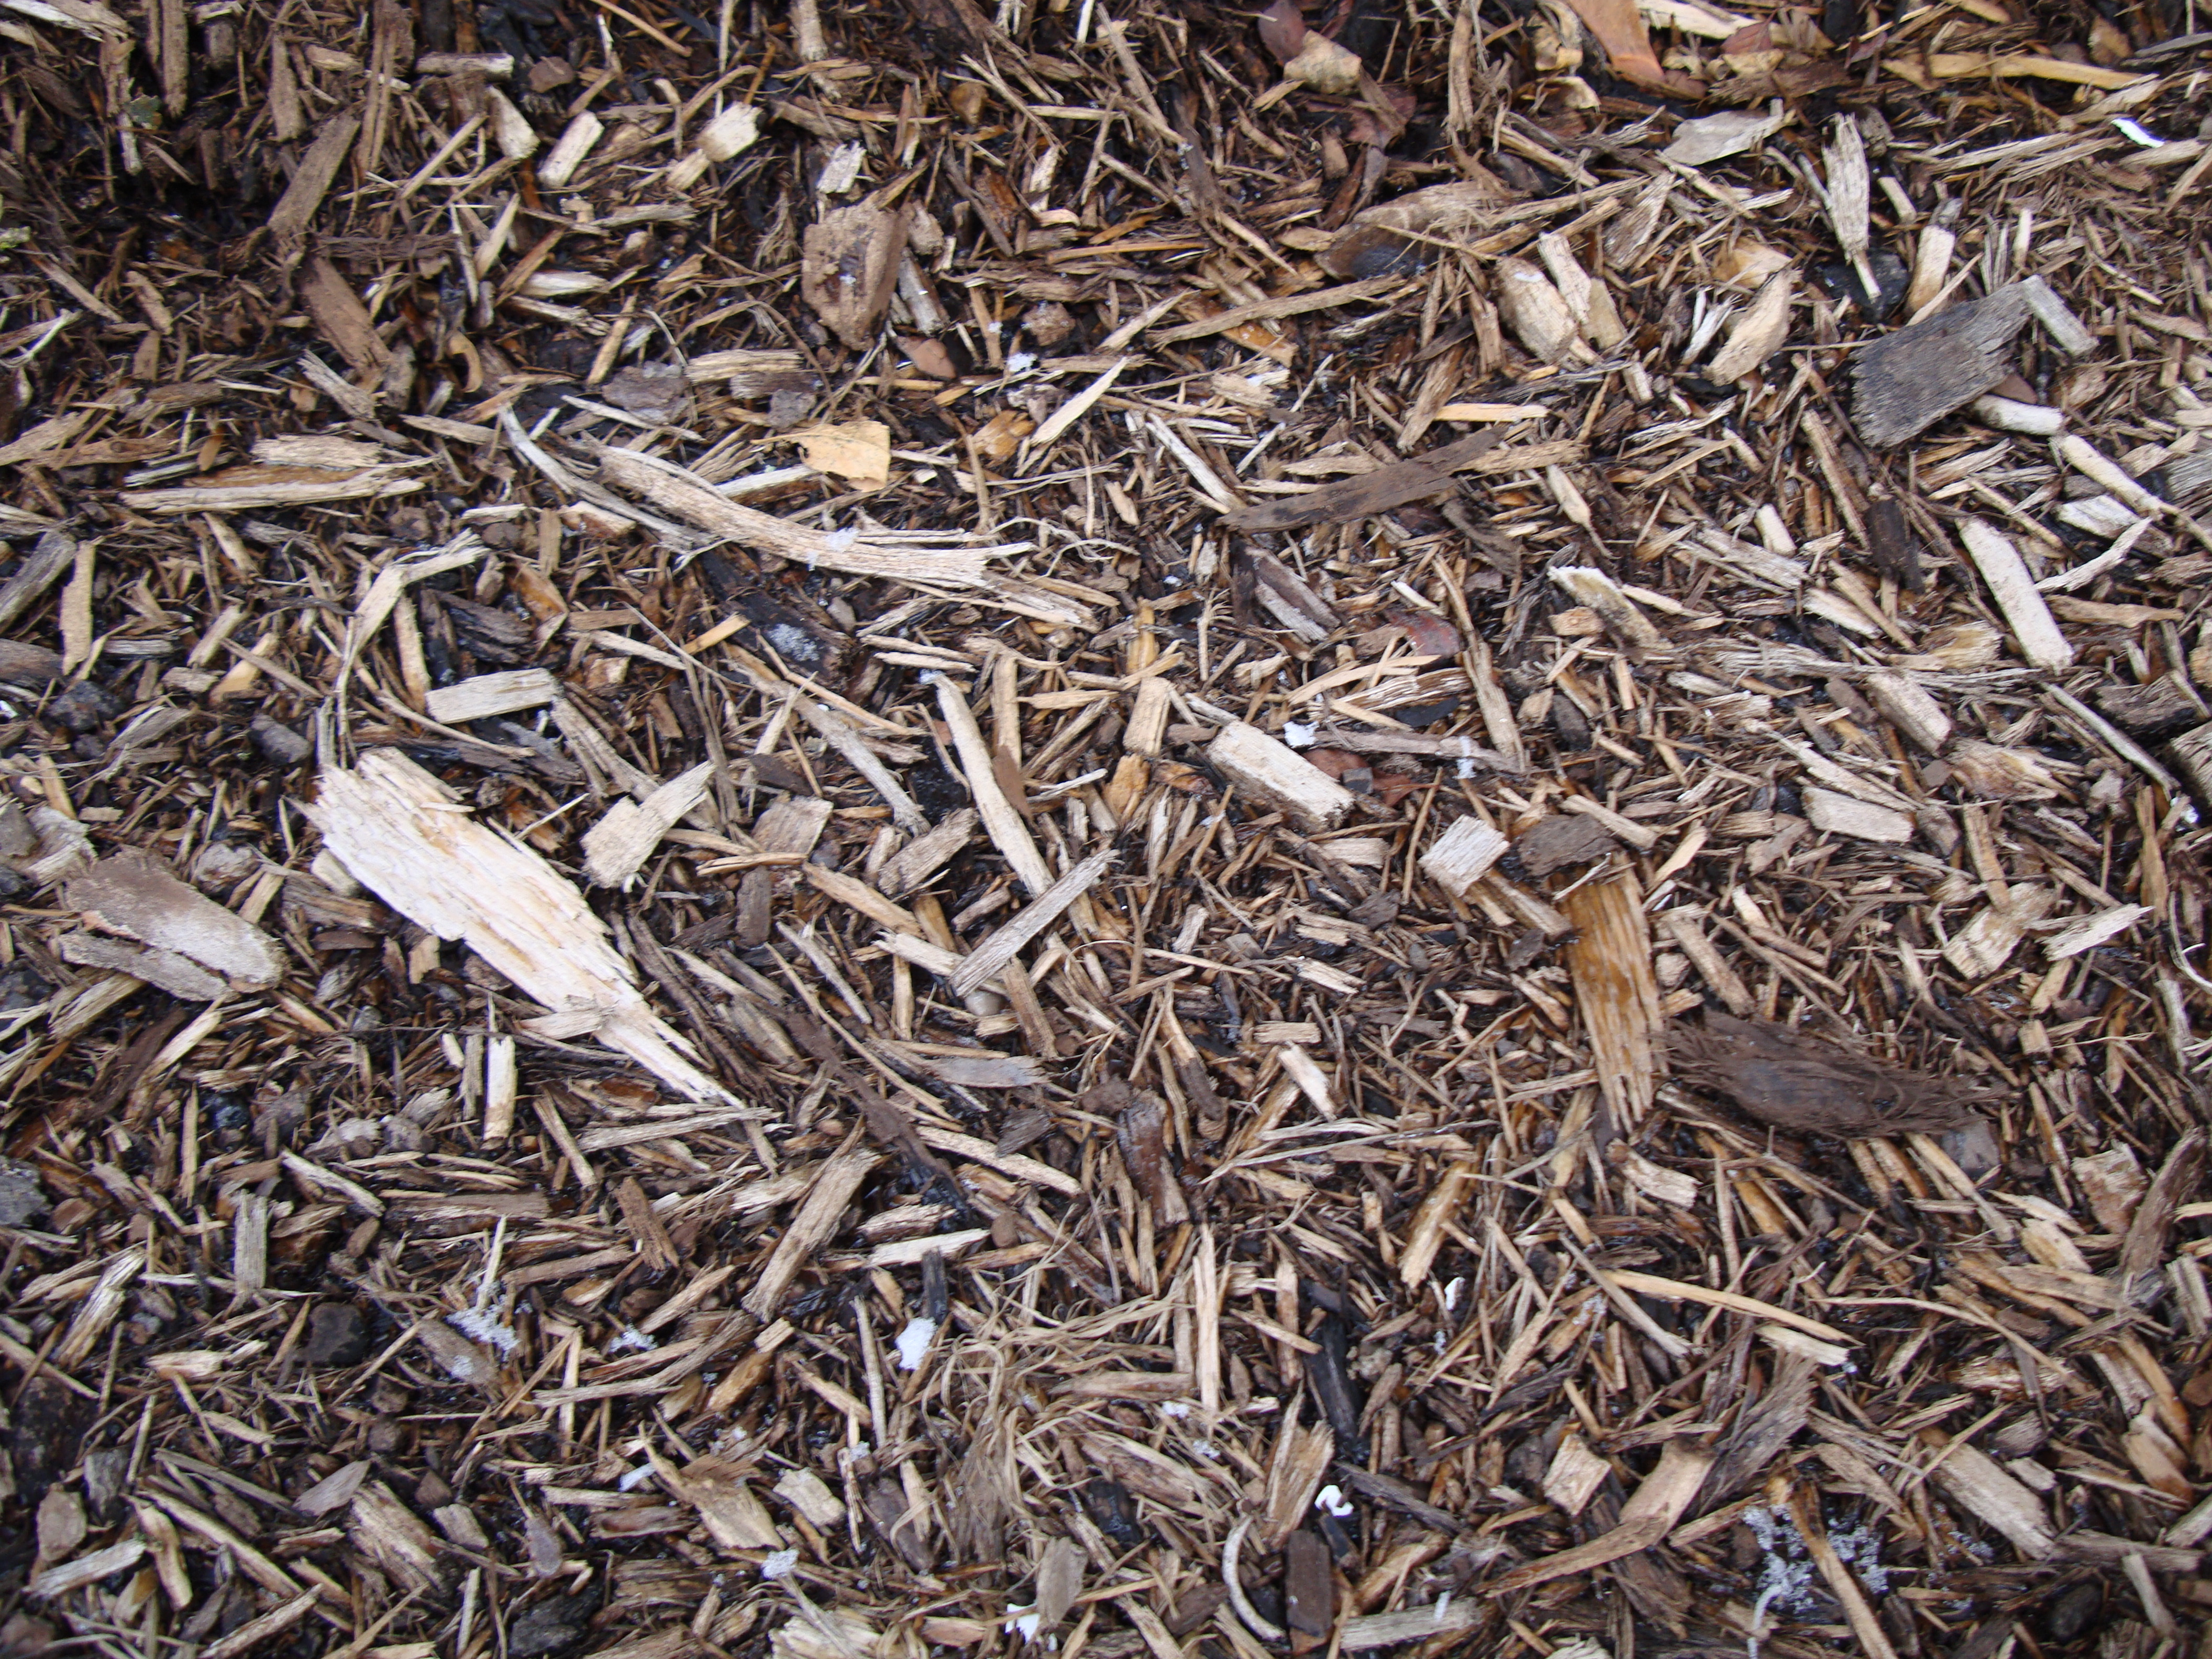 Woodchips, Backgrounds, Dirt, Ground, Textures, HQ Photo